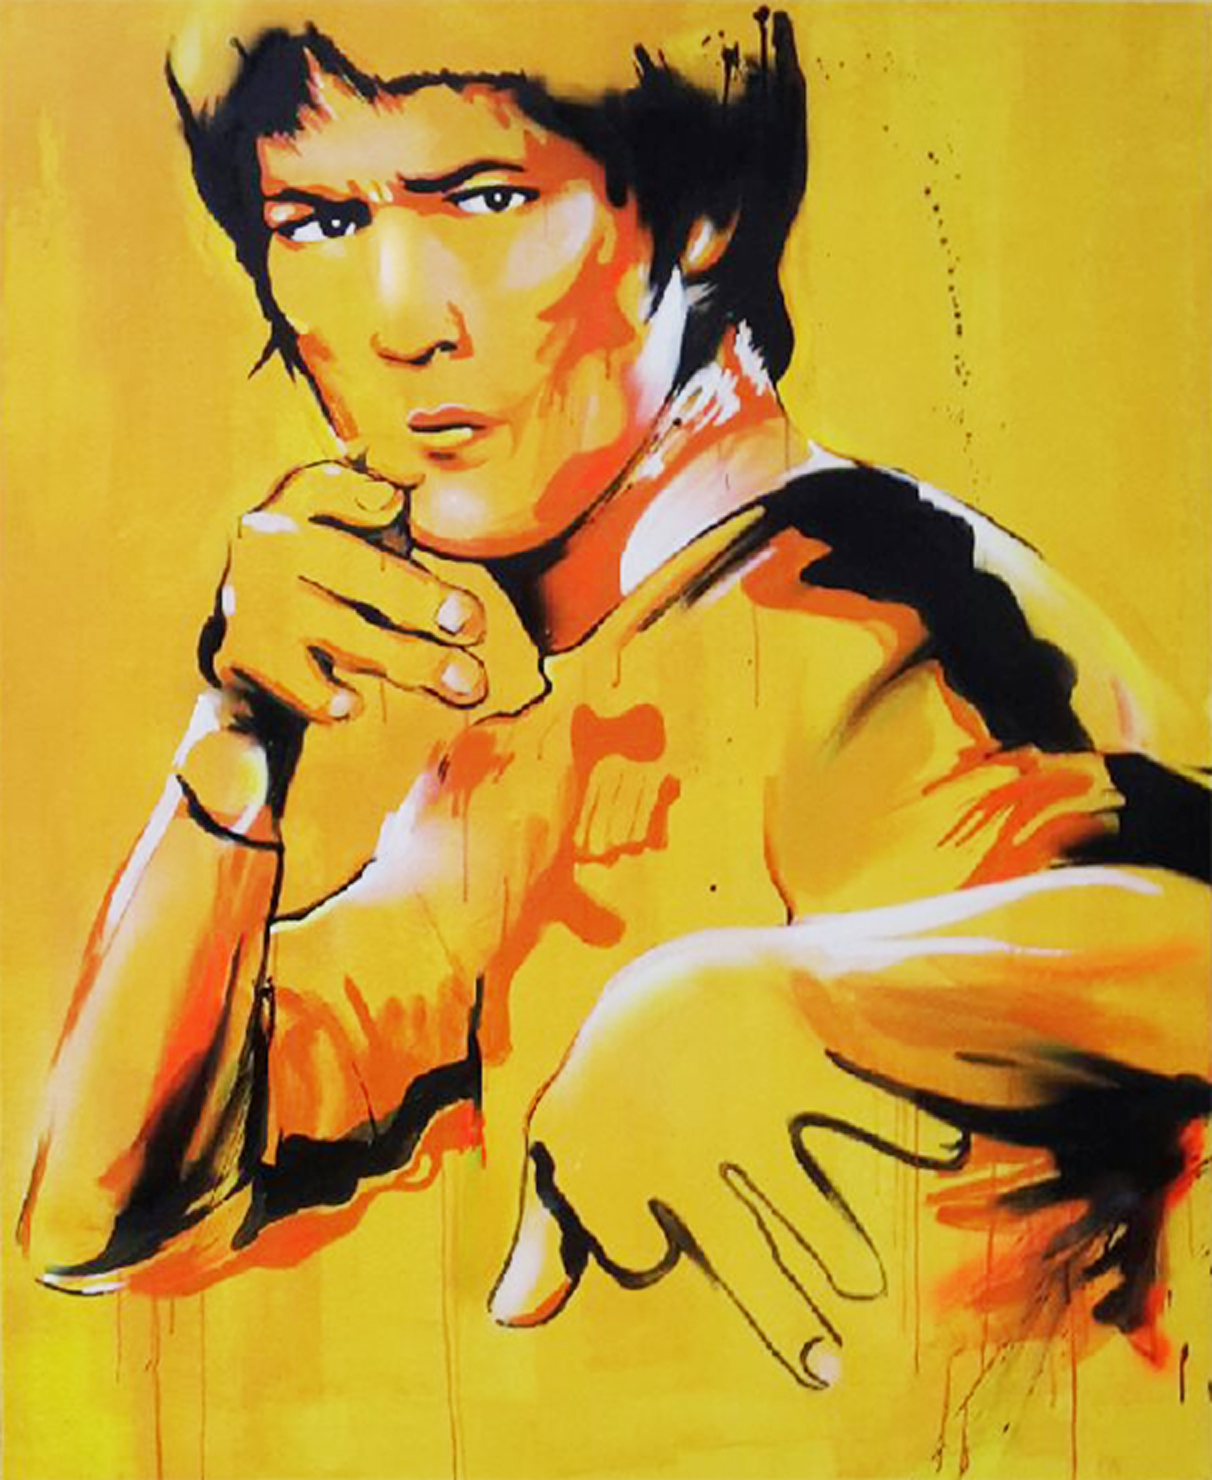 BRUCE - 114x146 cm - 1800€ - Spray paint and acrylic on canvas